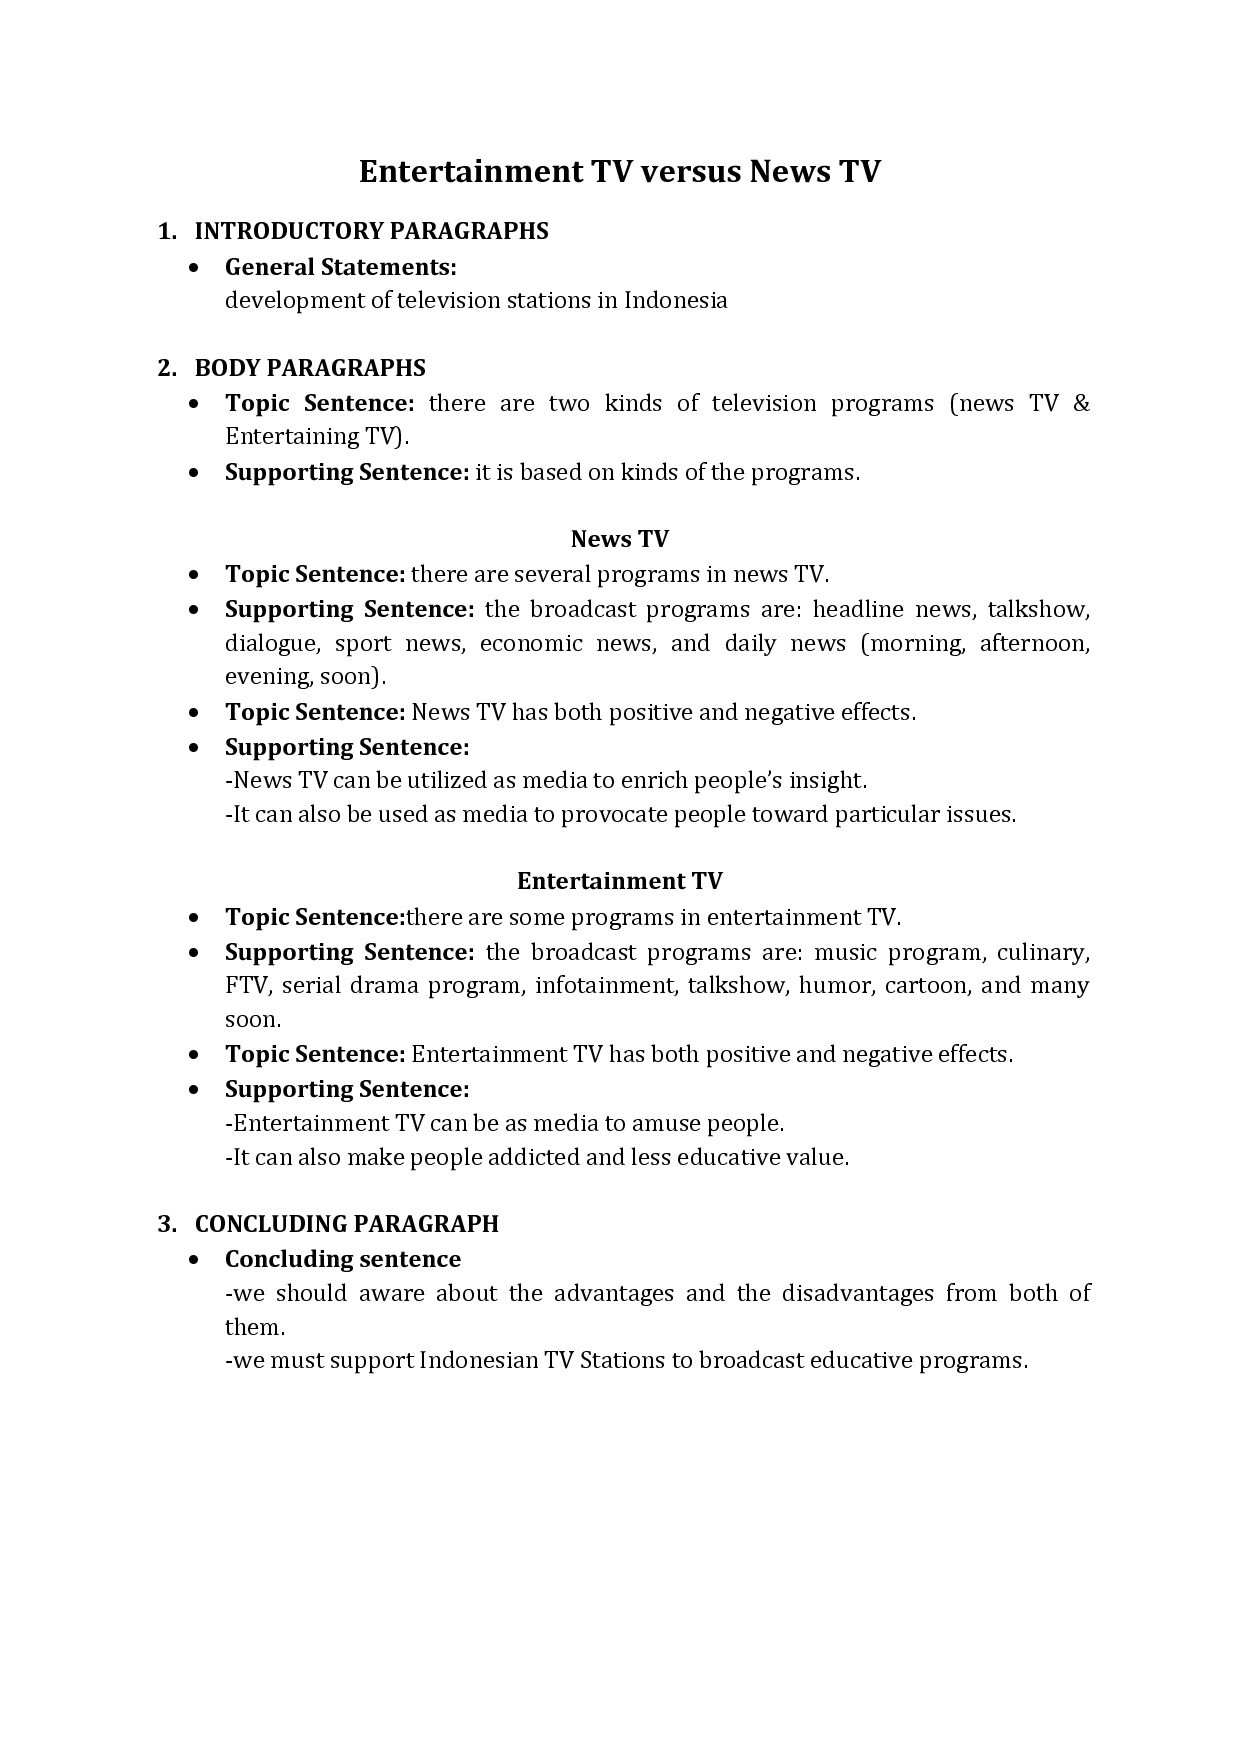 020 College Essay Outline Format Writings And Essays